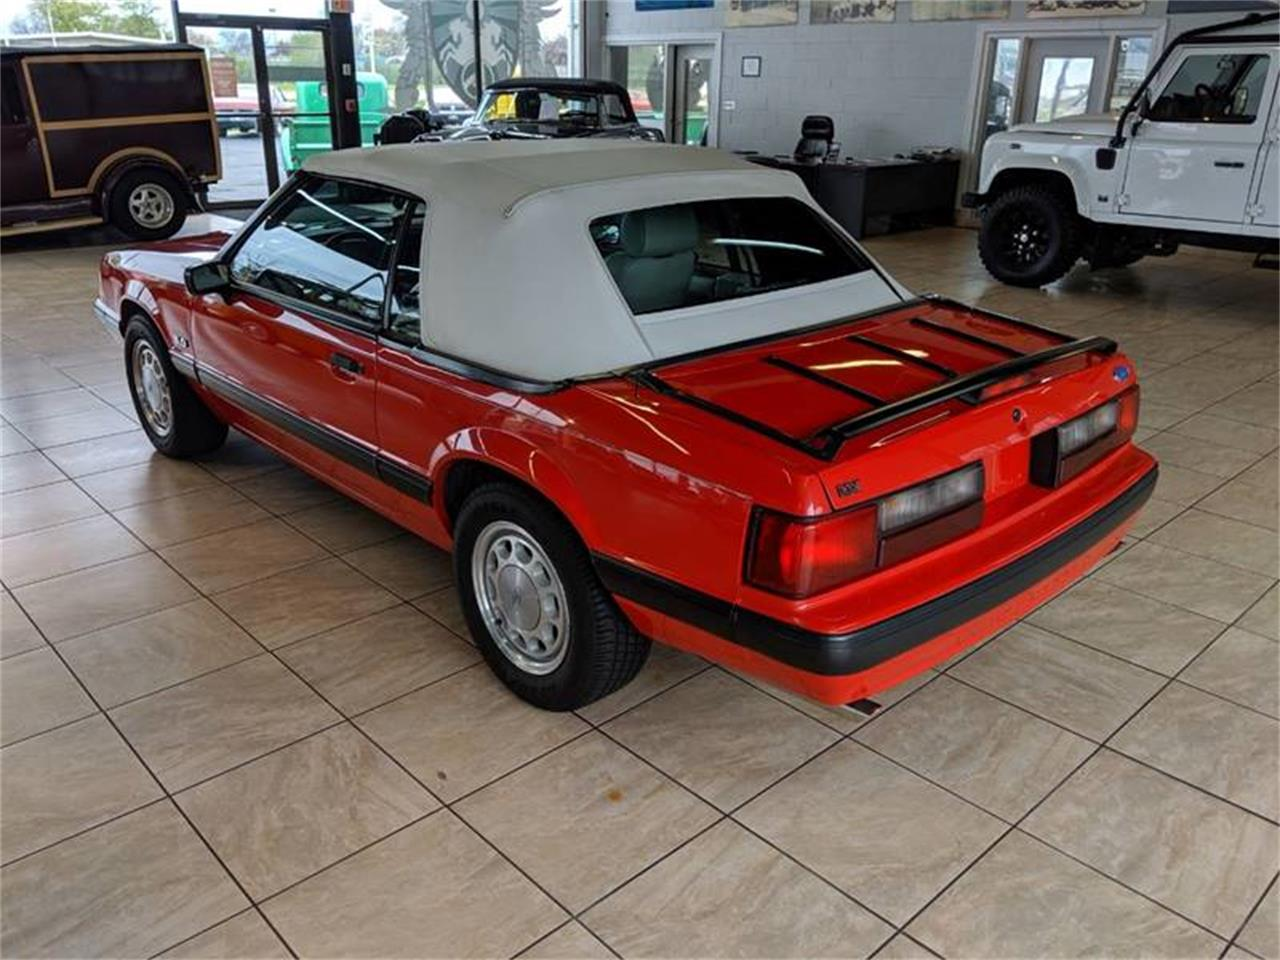 Large Picture of 1989 Mustang - $17,900.00 - Q2R9